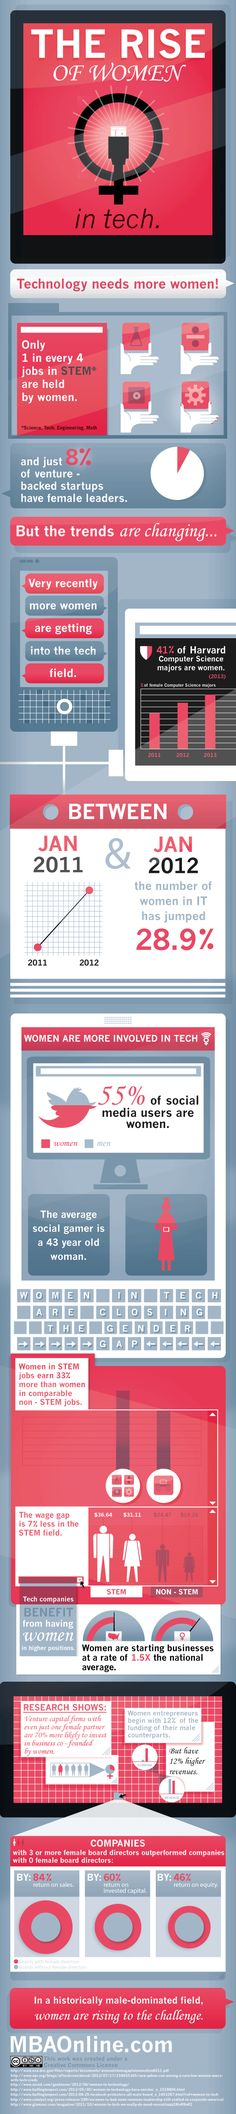 The Rise of Women in Tech - with that said... Make it a great #IWD 2013! #mstech [just food for thought guys]